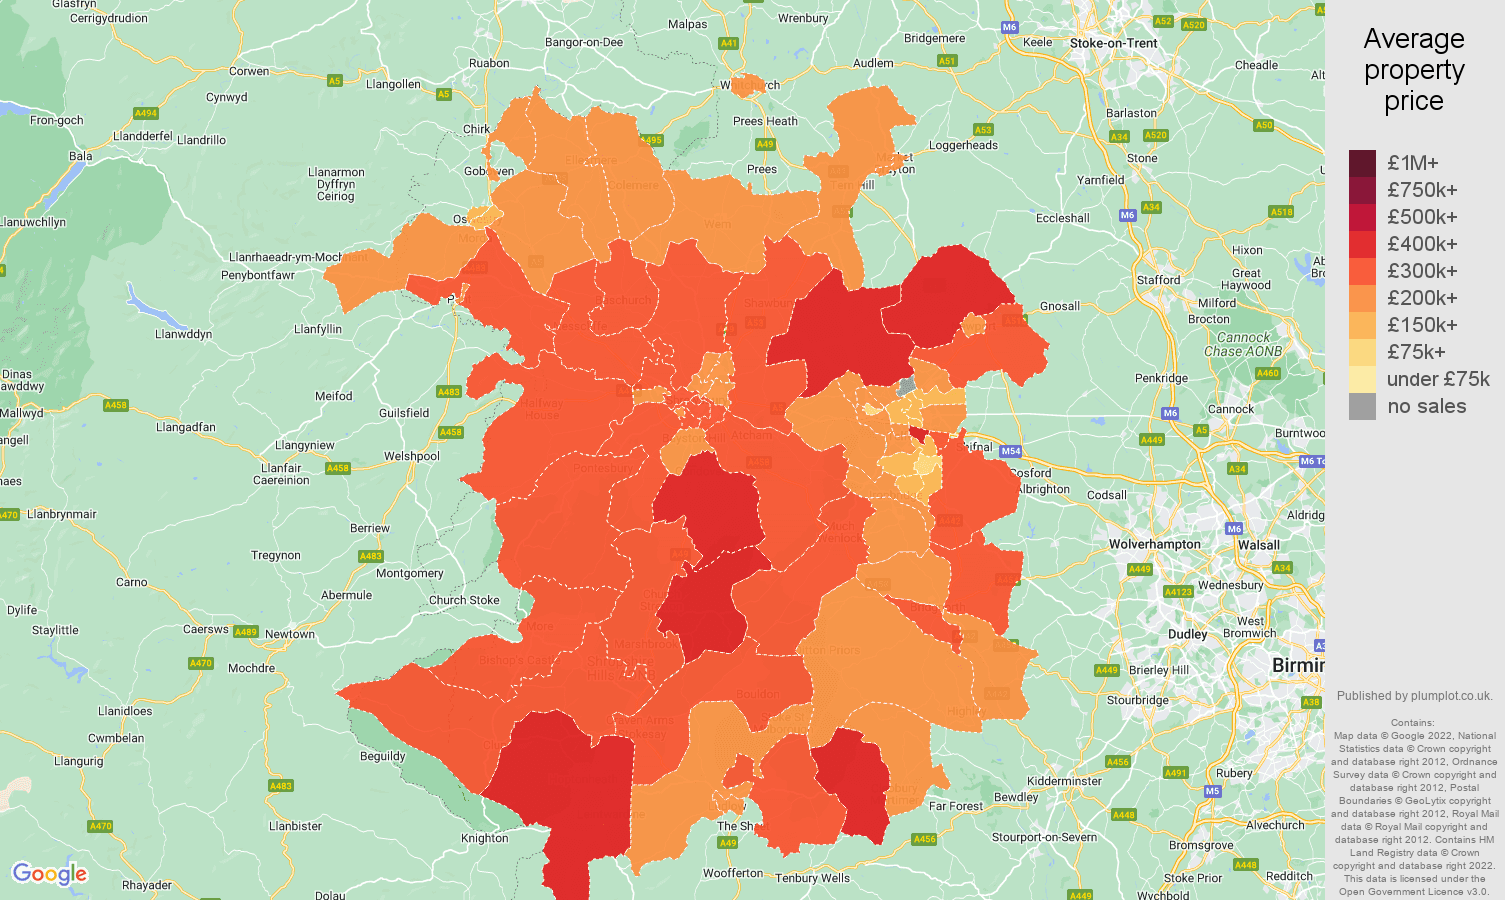 Shropshire house prices map